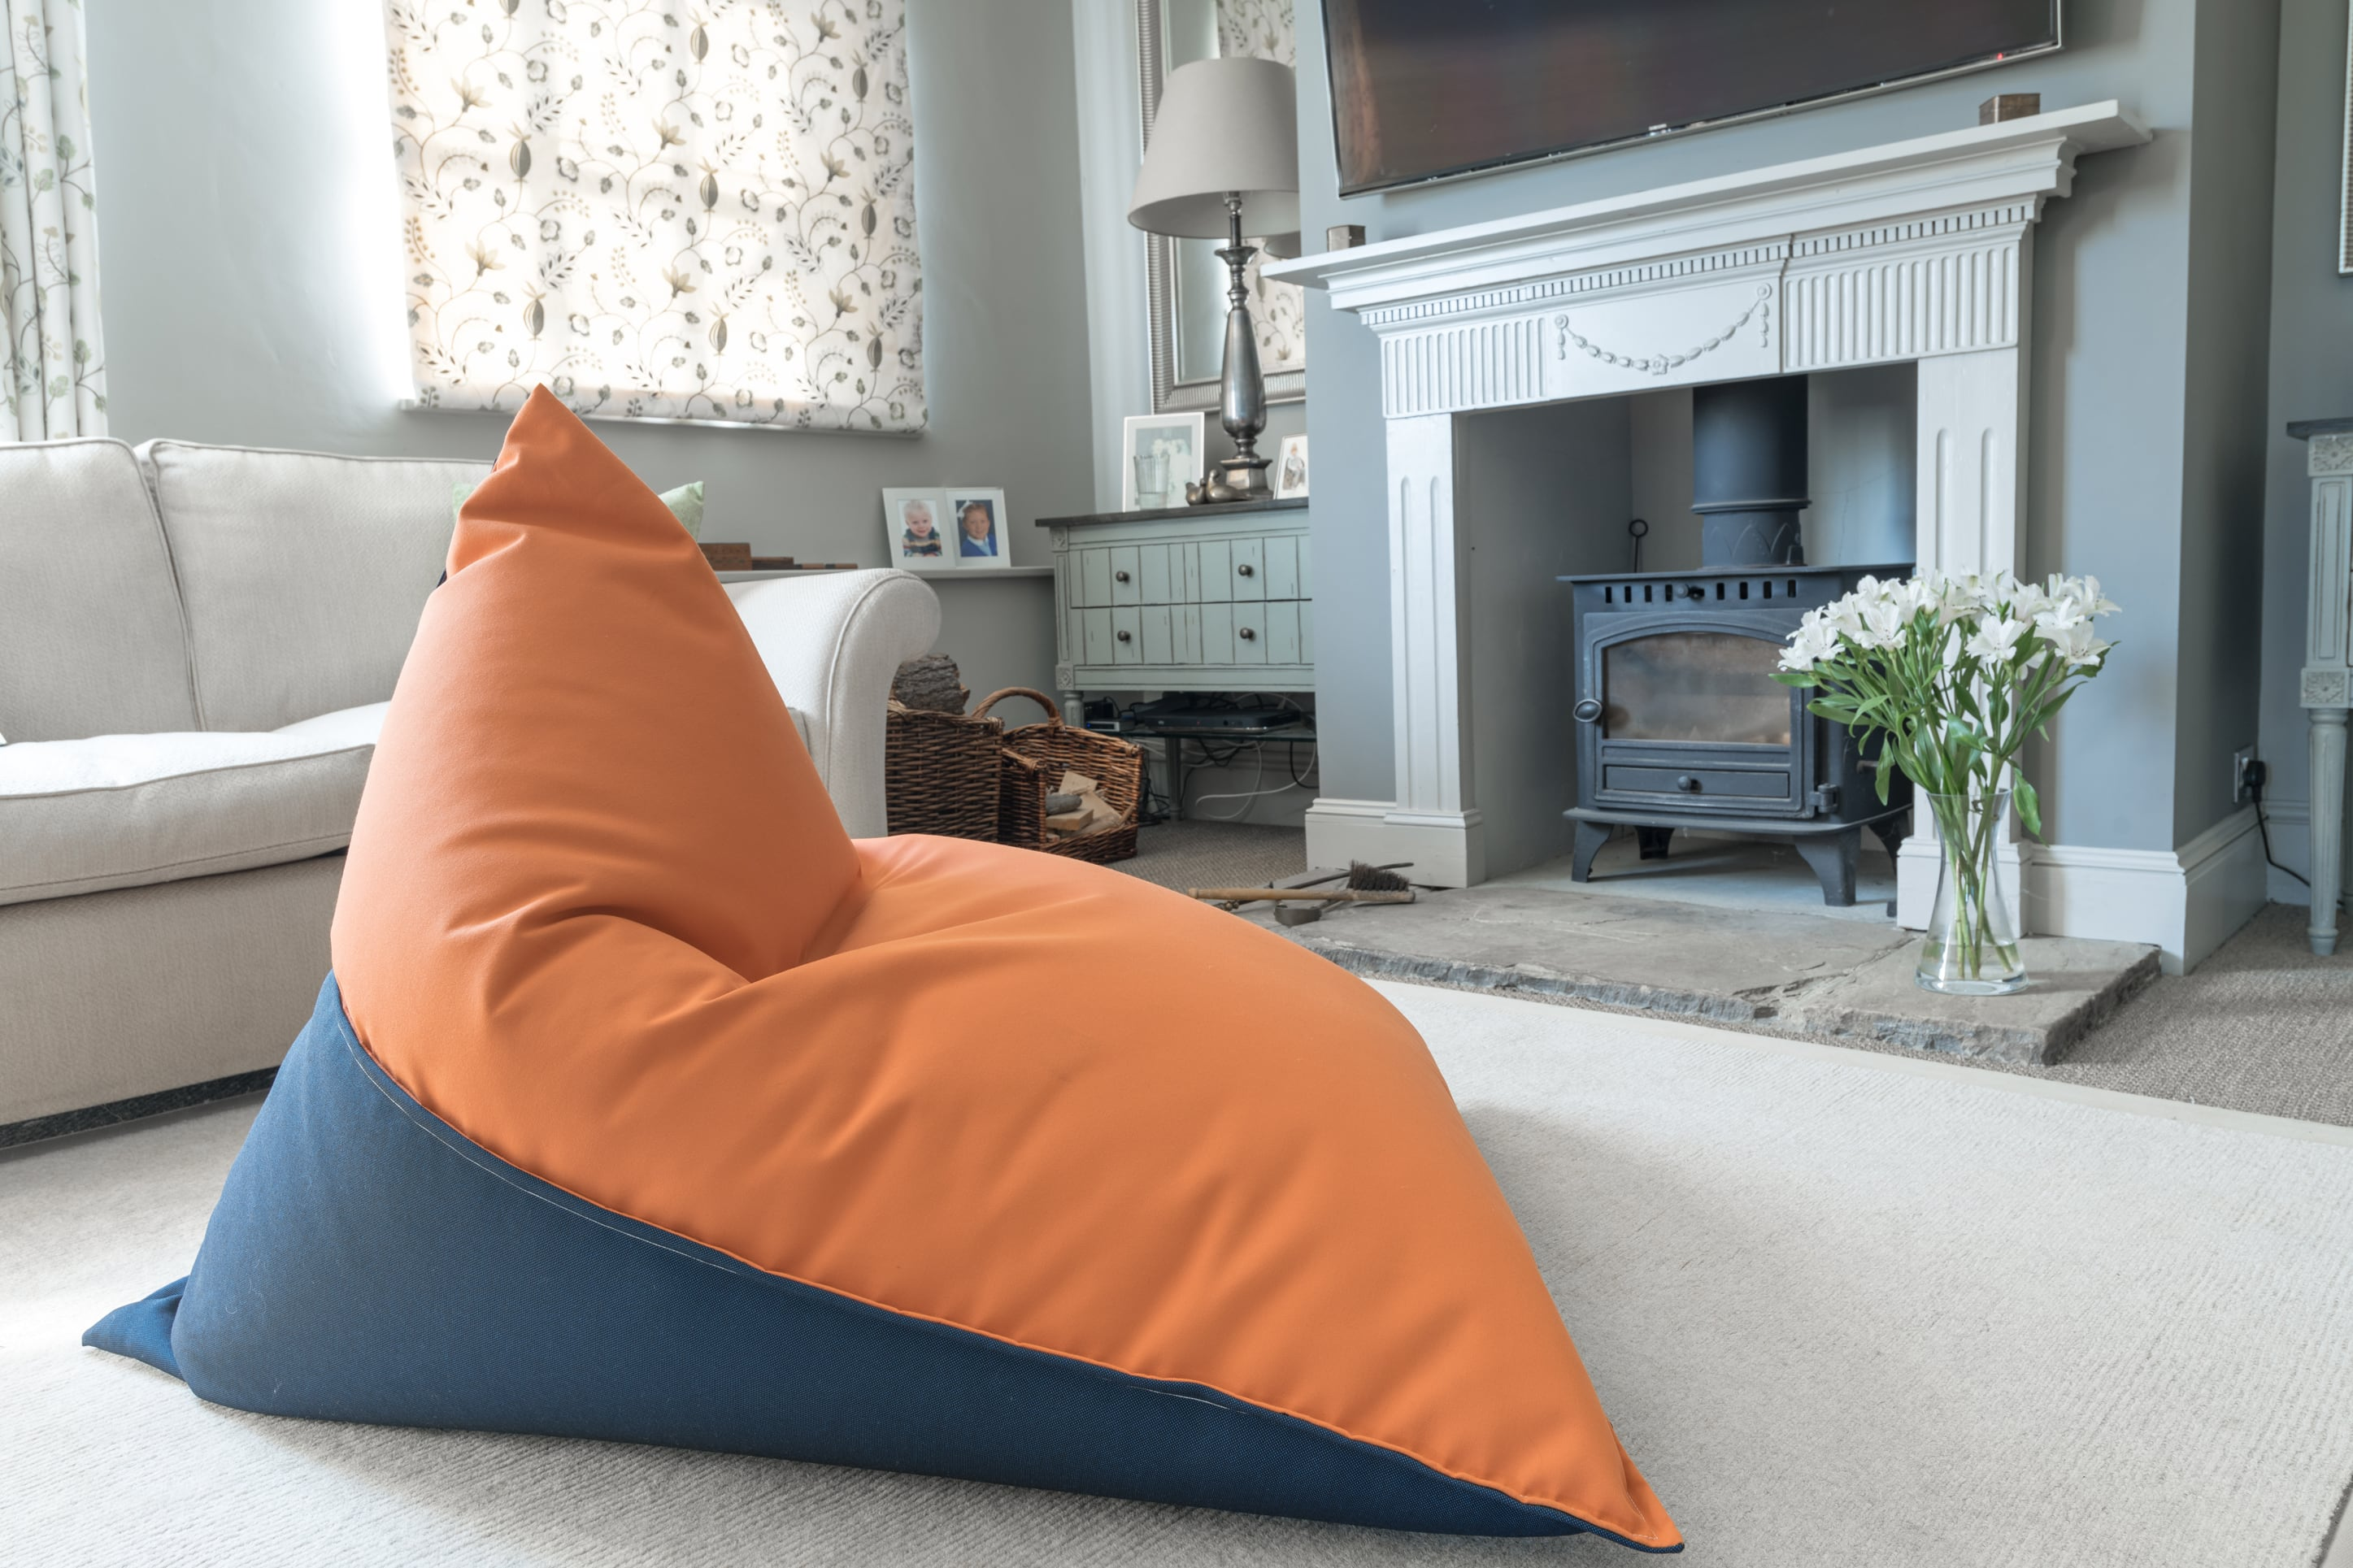 Armadillo Sun bean bag chair in orange and navy blue fabric inside